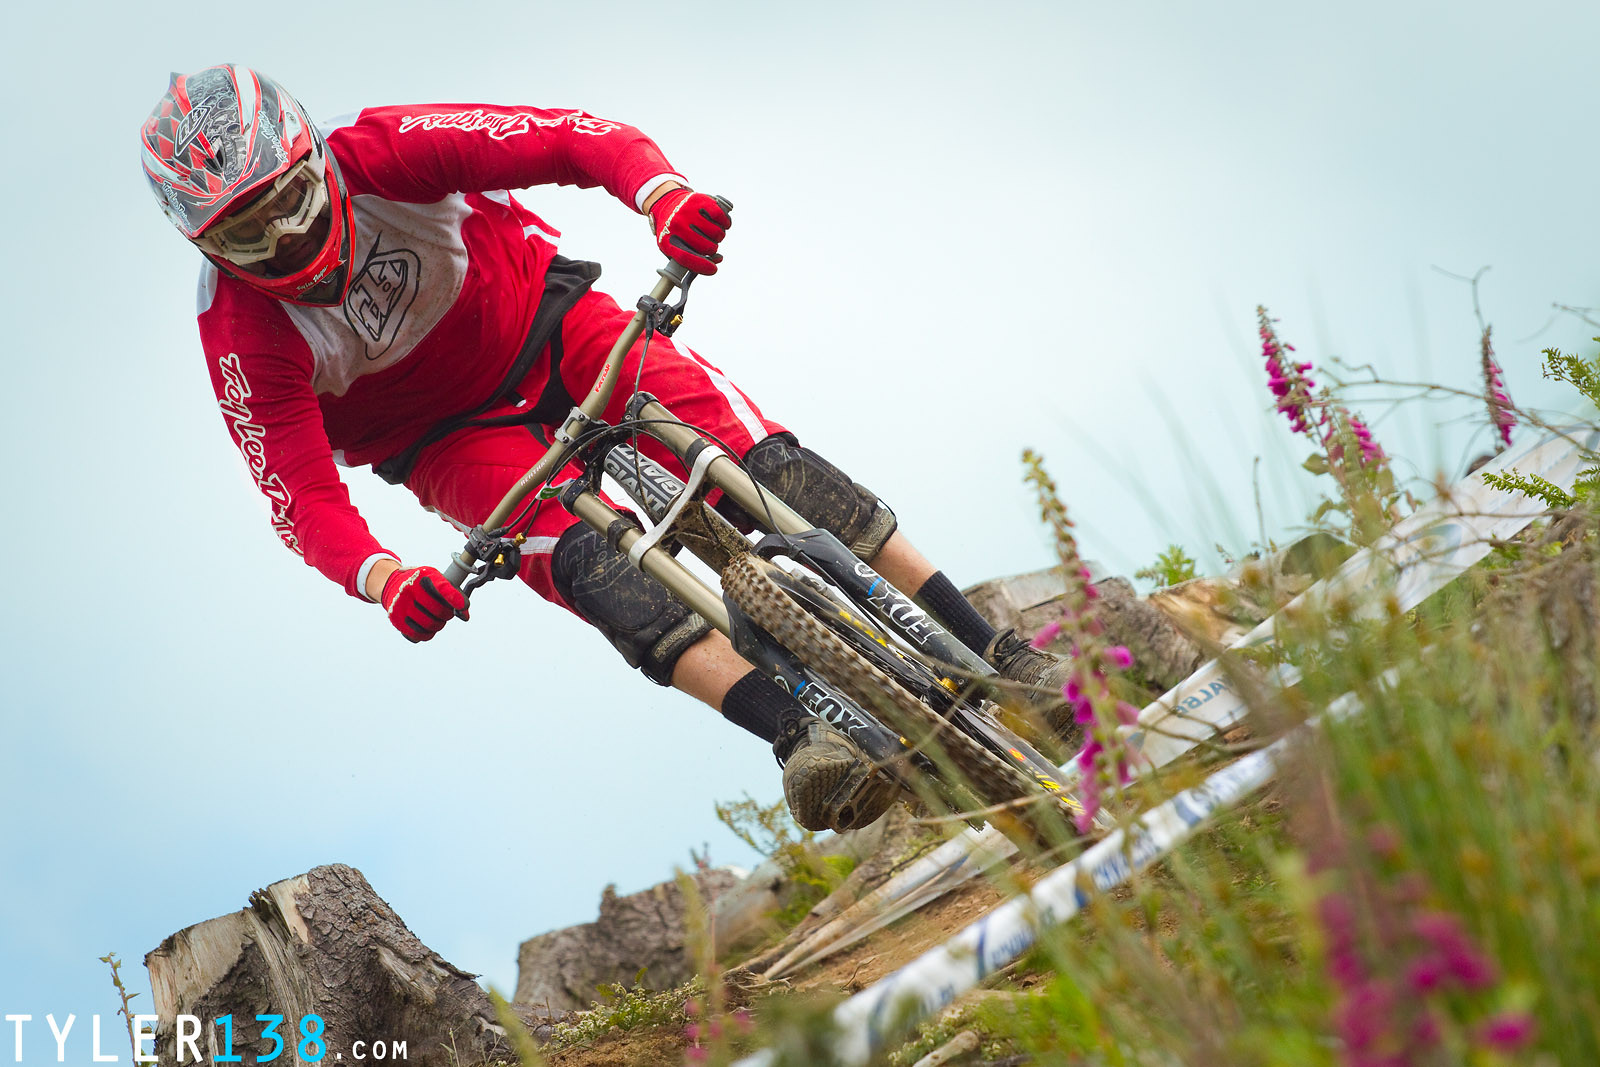 Caersws Cup Rnd 1 2011 - Tyler138 - Mountain Biking Pictures - Vital MTB